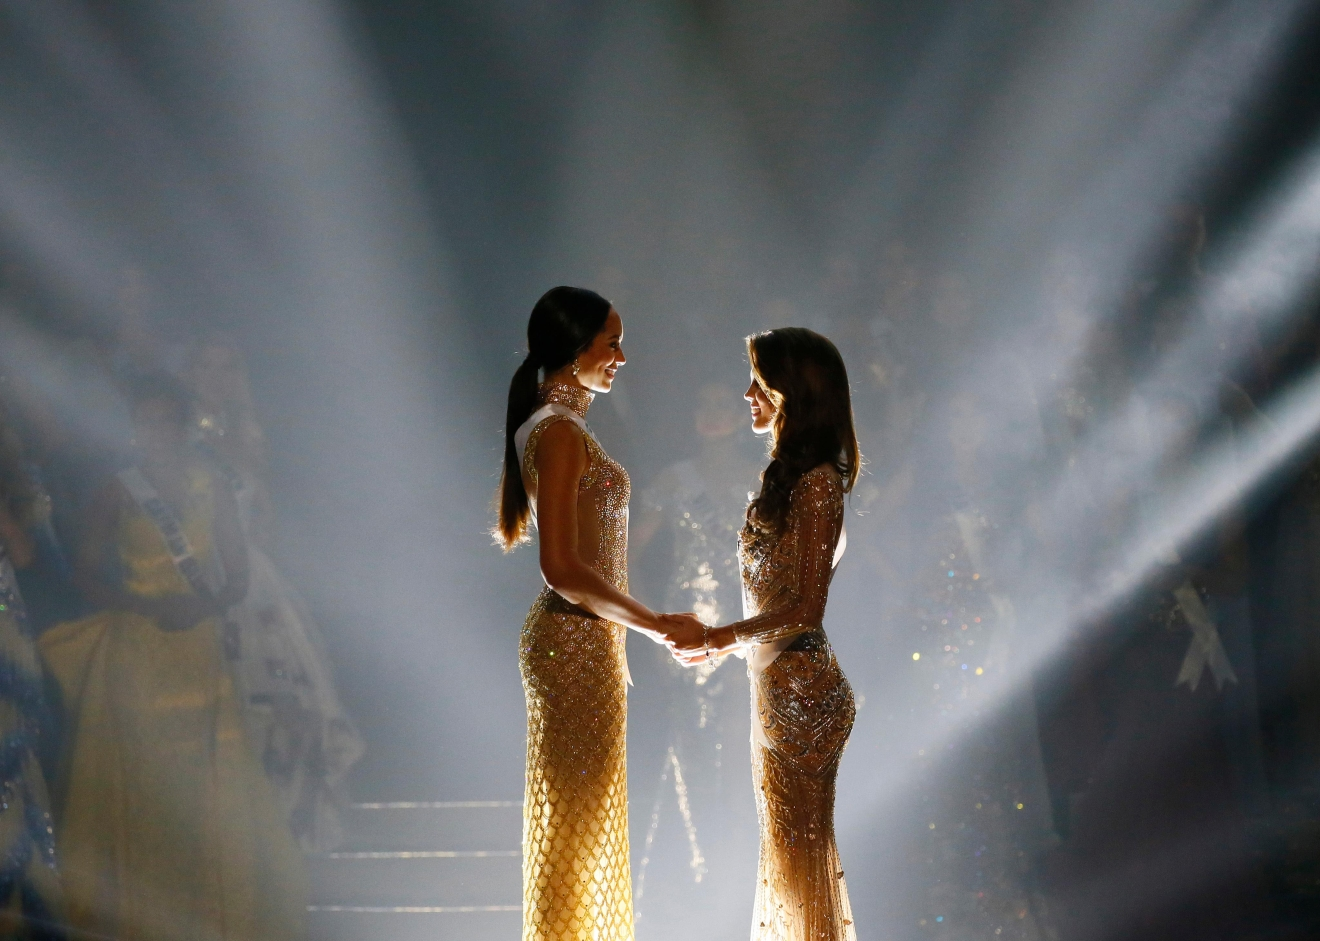 Iris Mittenaere of France, right, and Raquel Pelissier of Haiti hold hands moments before the winner was announced in the Miss Universe 2016 coronation Monday, Jan. 30, 2017, at the Mall of Asia in suburban Pasay city, south of Manila, Philippines. Mittenaere was crowned the Miss Universe 2016. (AP Photo/Bullit Marquez)